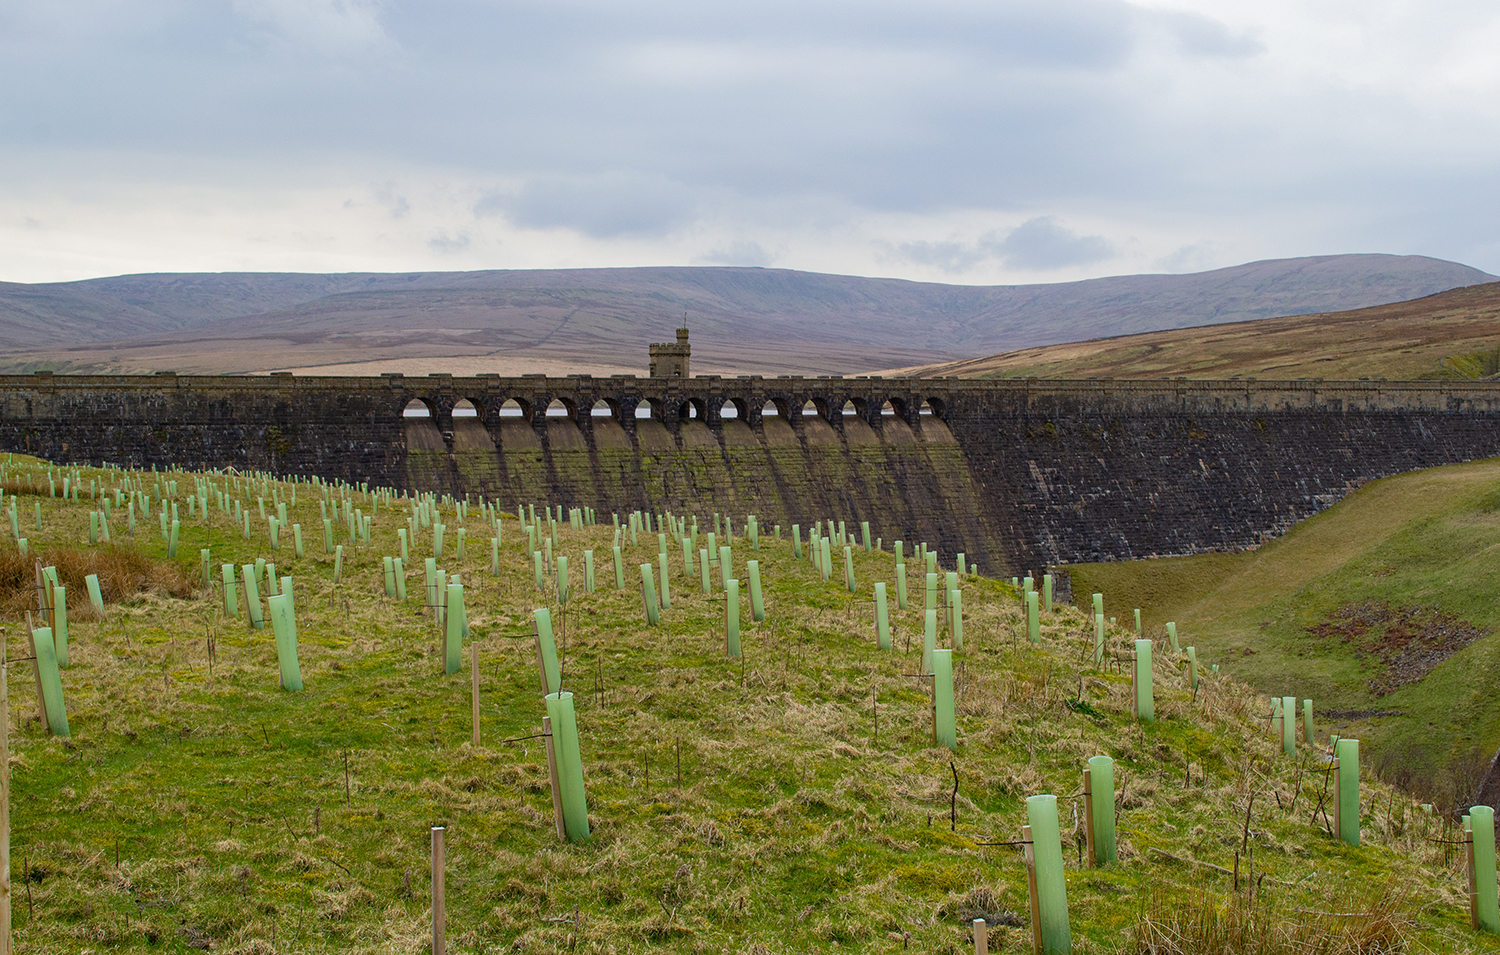 Planting trees in the Yorkshire Dales